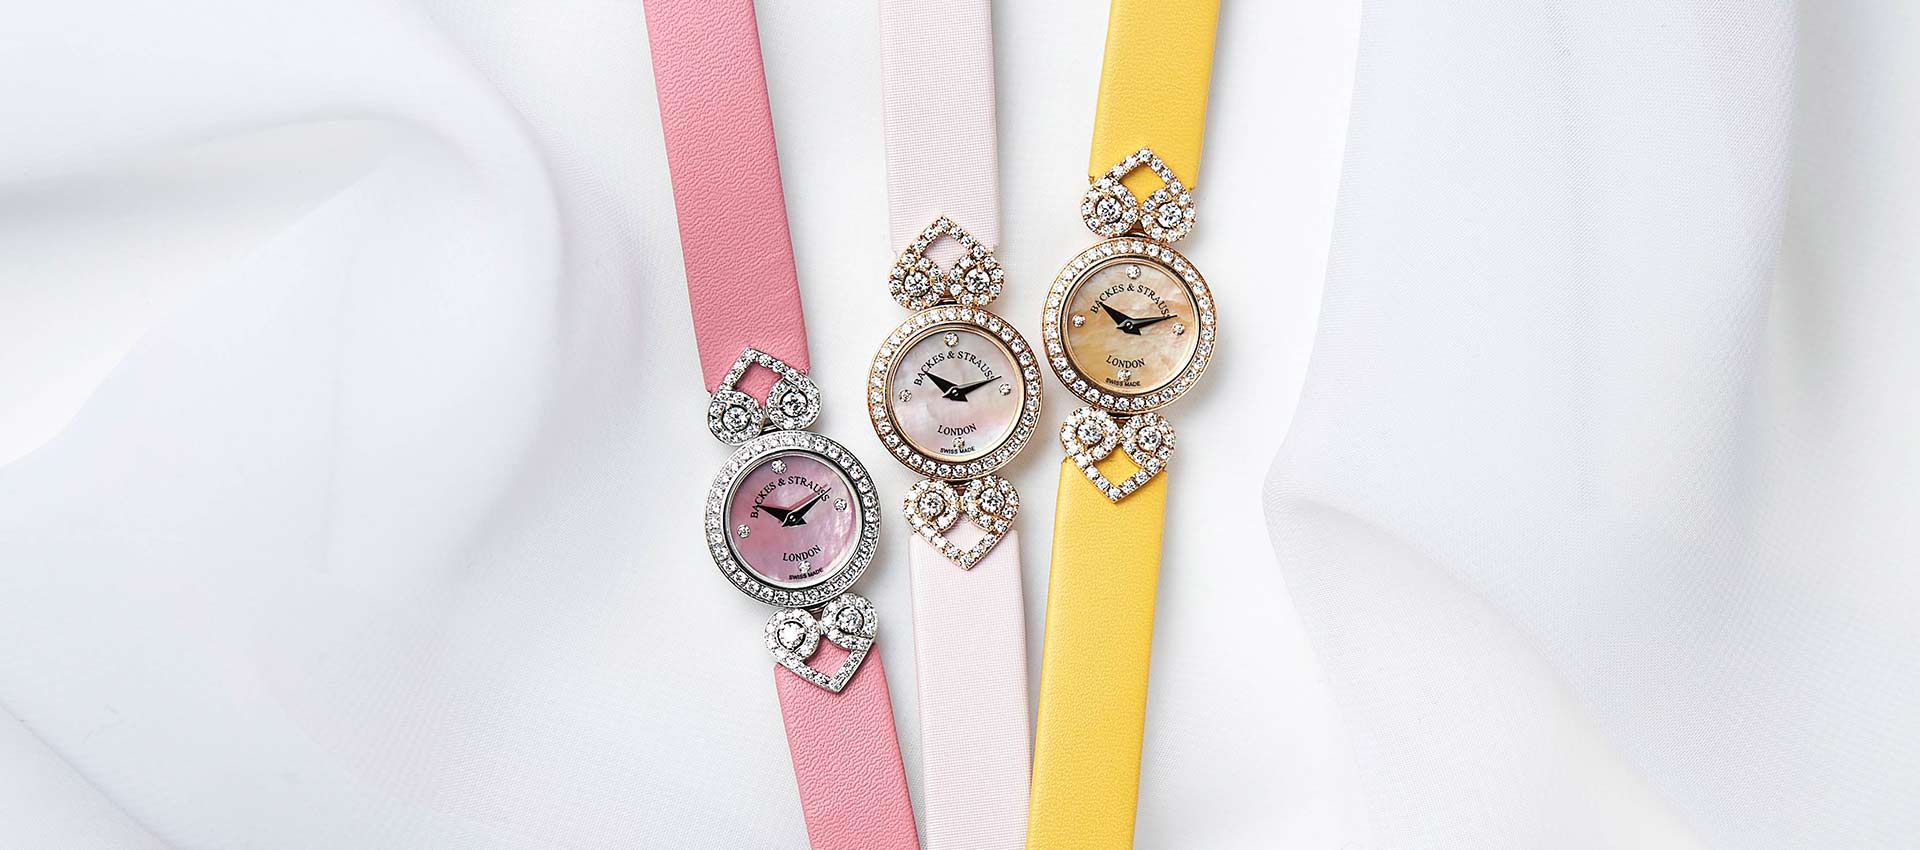 Miss Victoria collection diamond wristwatches for ladies